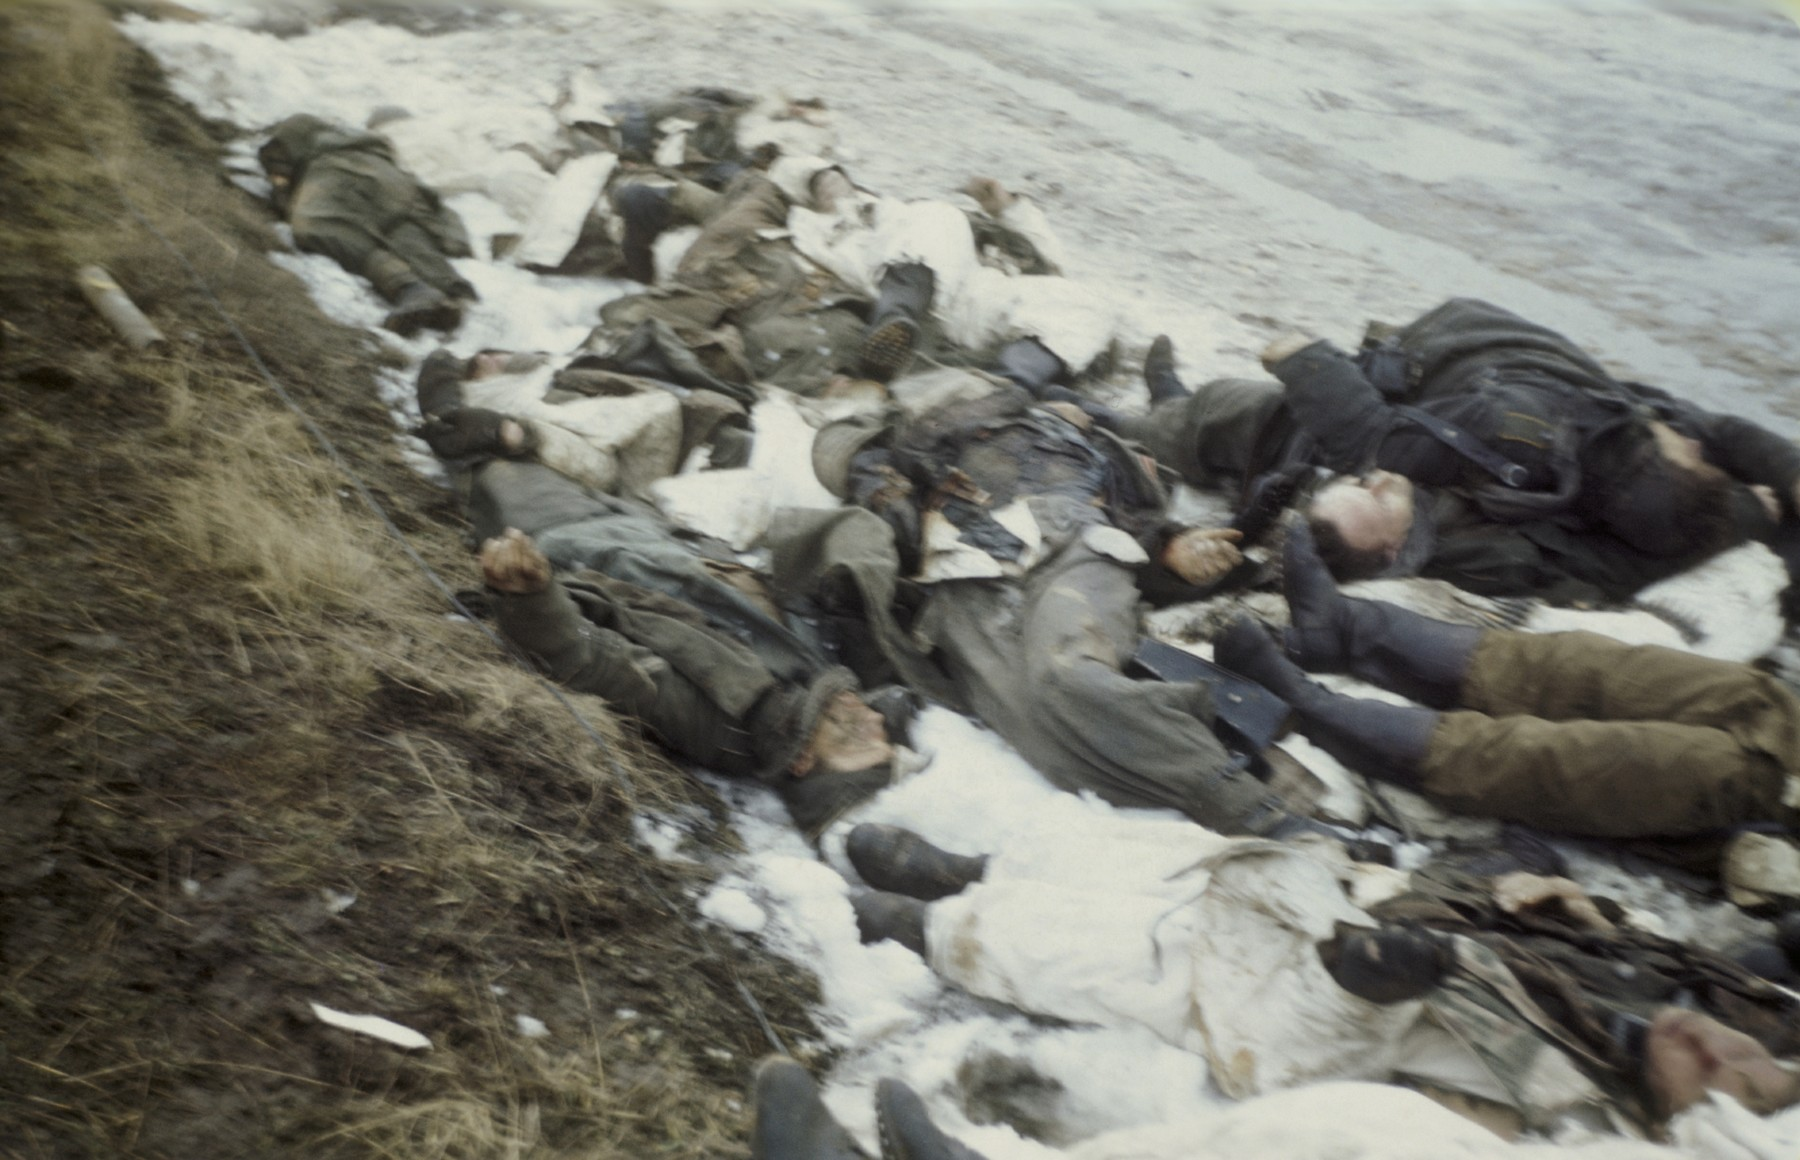 The snow covered bodies [probably of executed SS guards] in the newly liberated Dachau concentration camp.